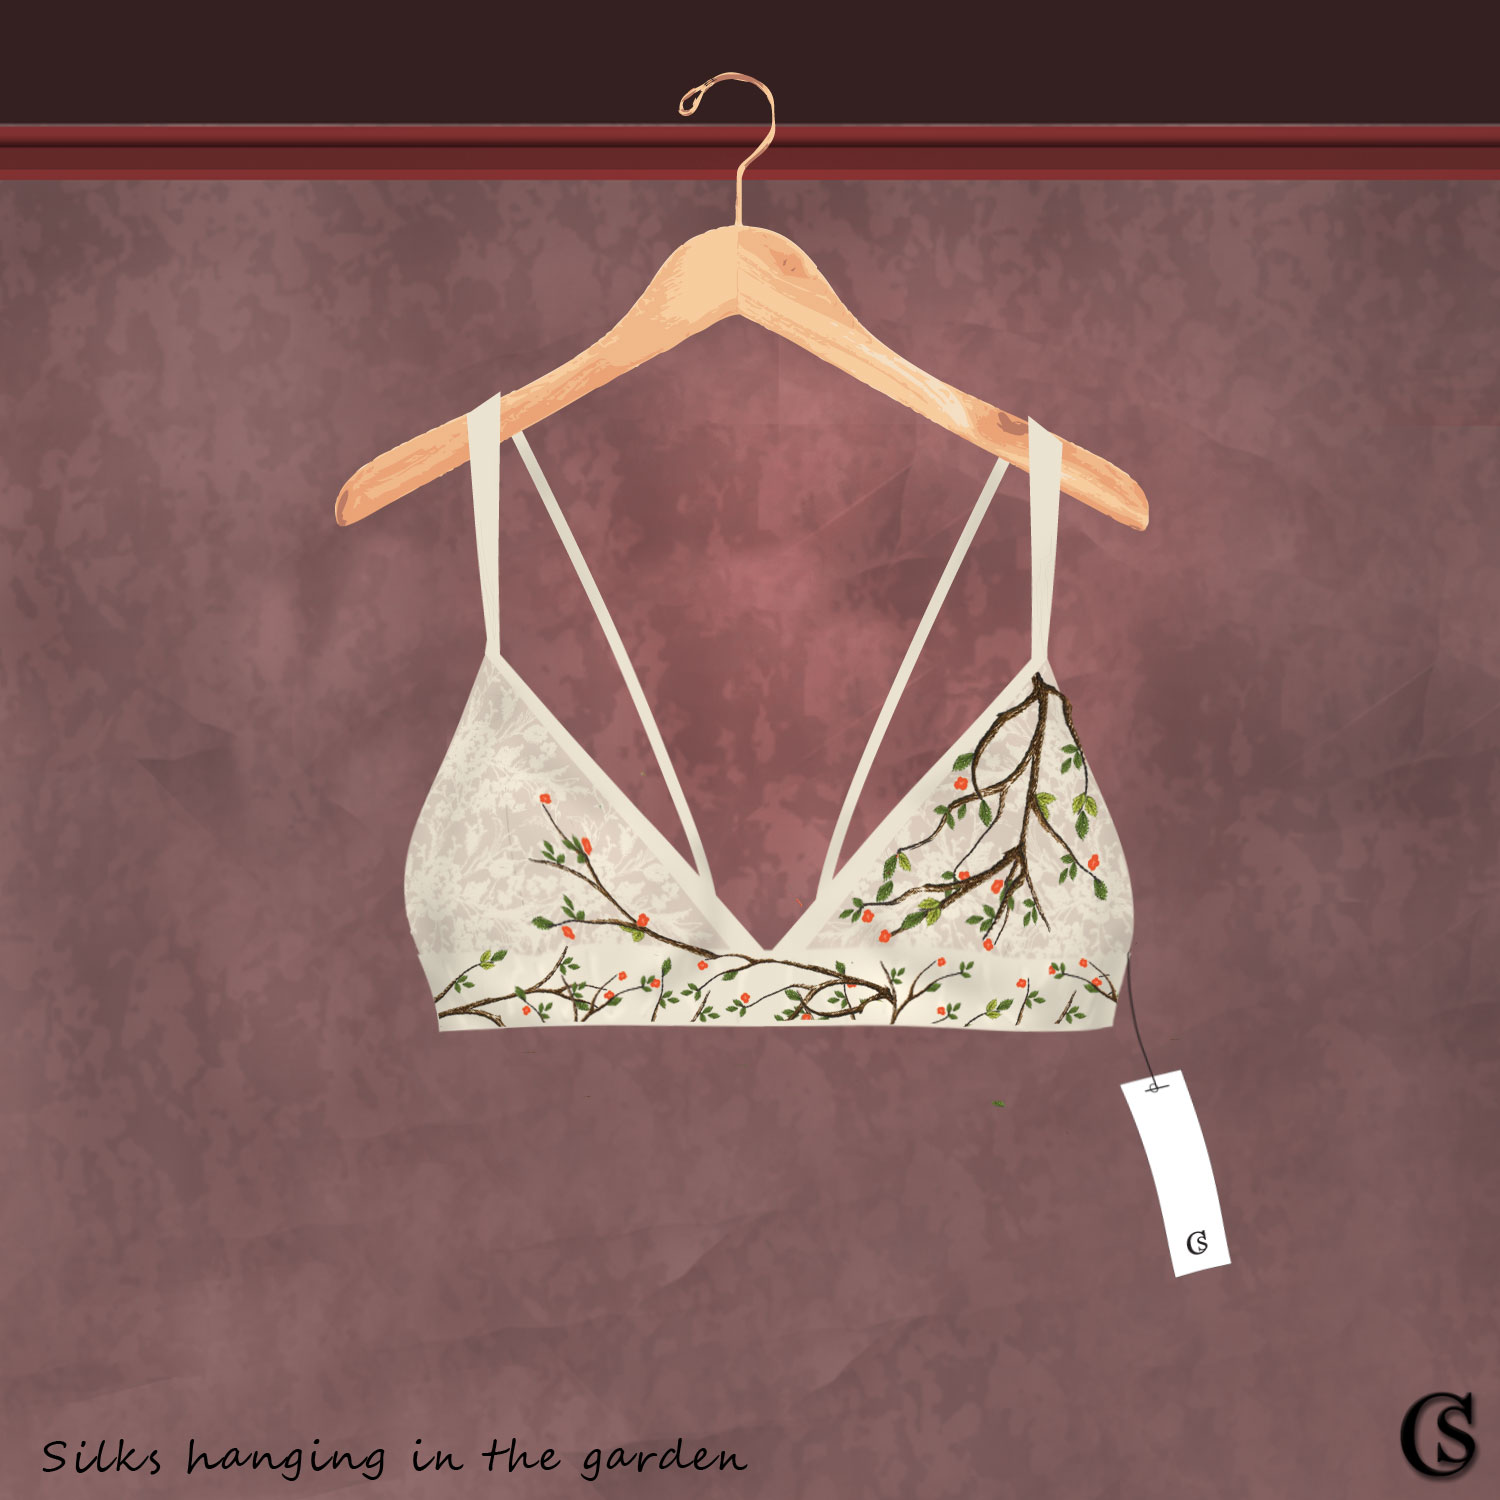 Silk bra concept hanging in the garden, CHIARIstyle